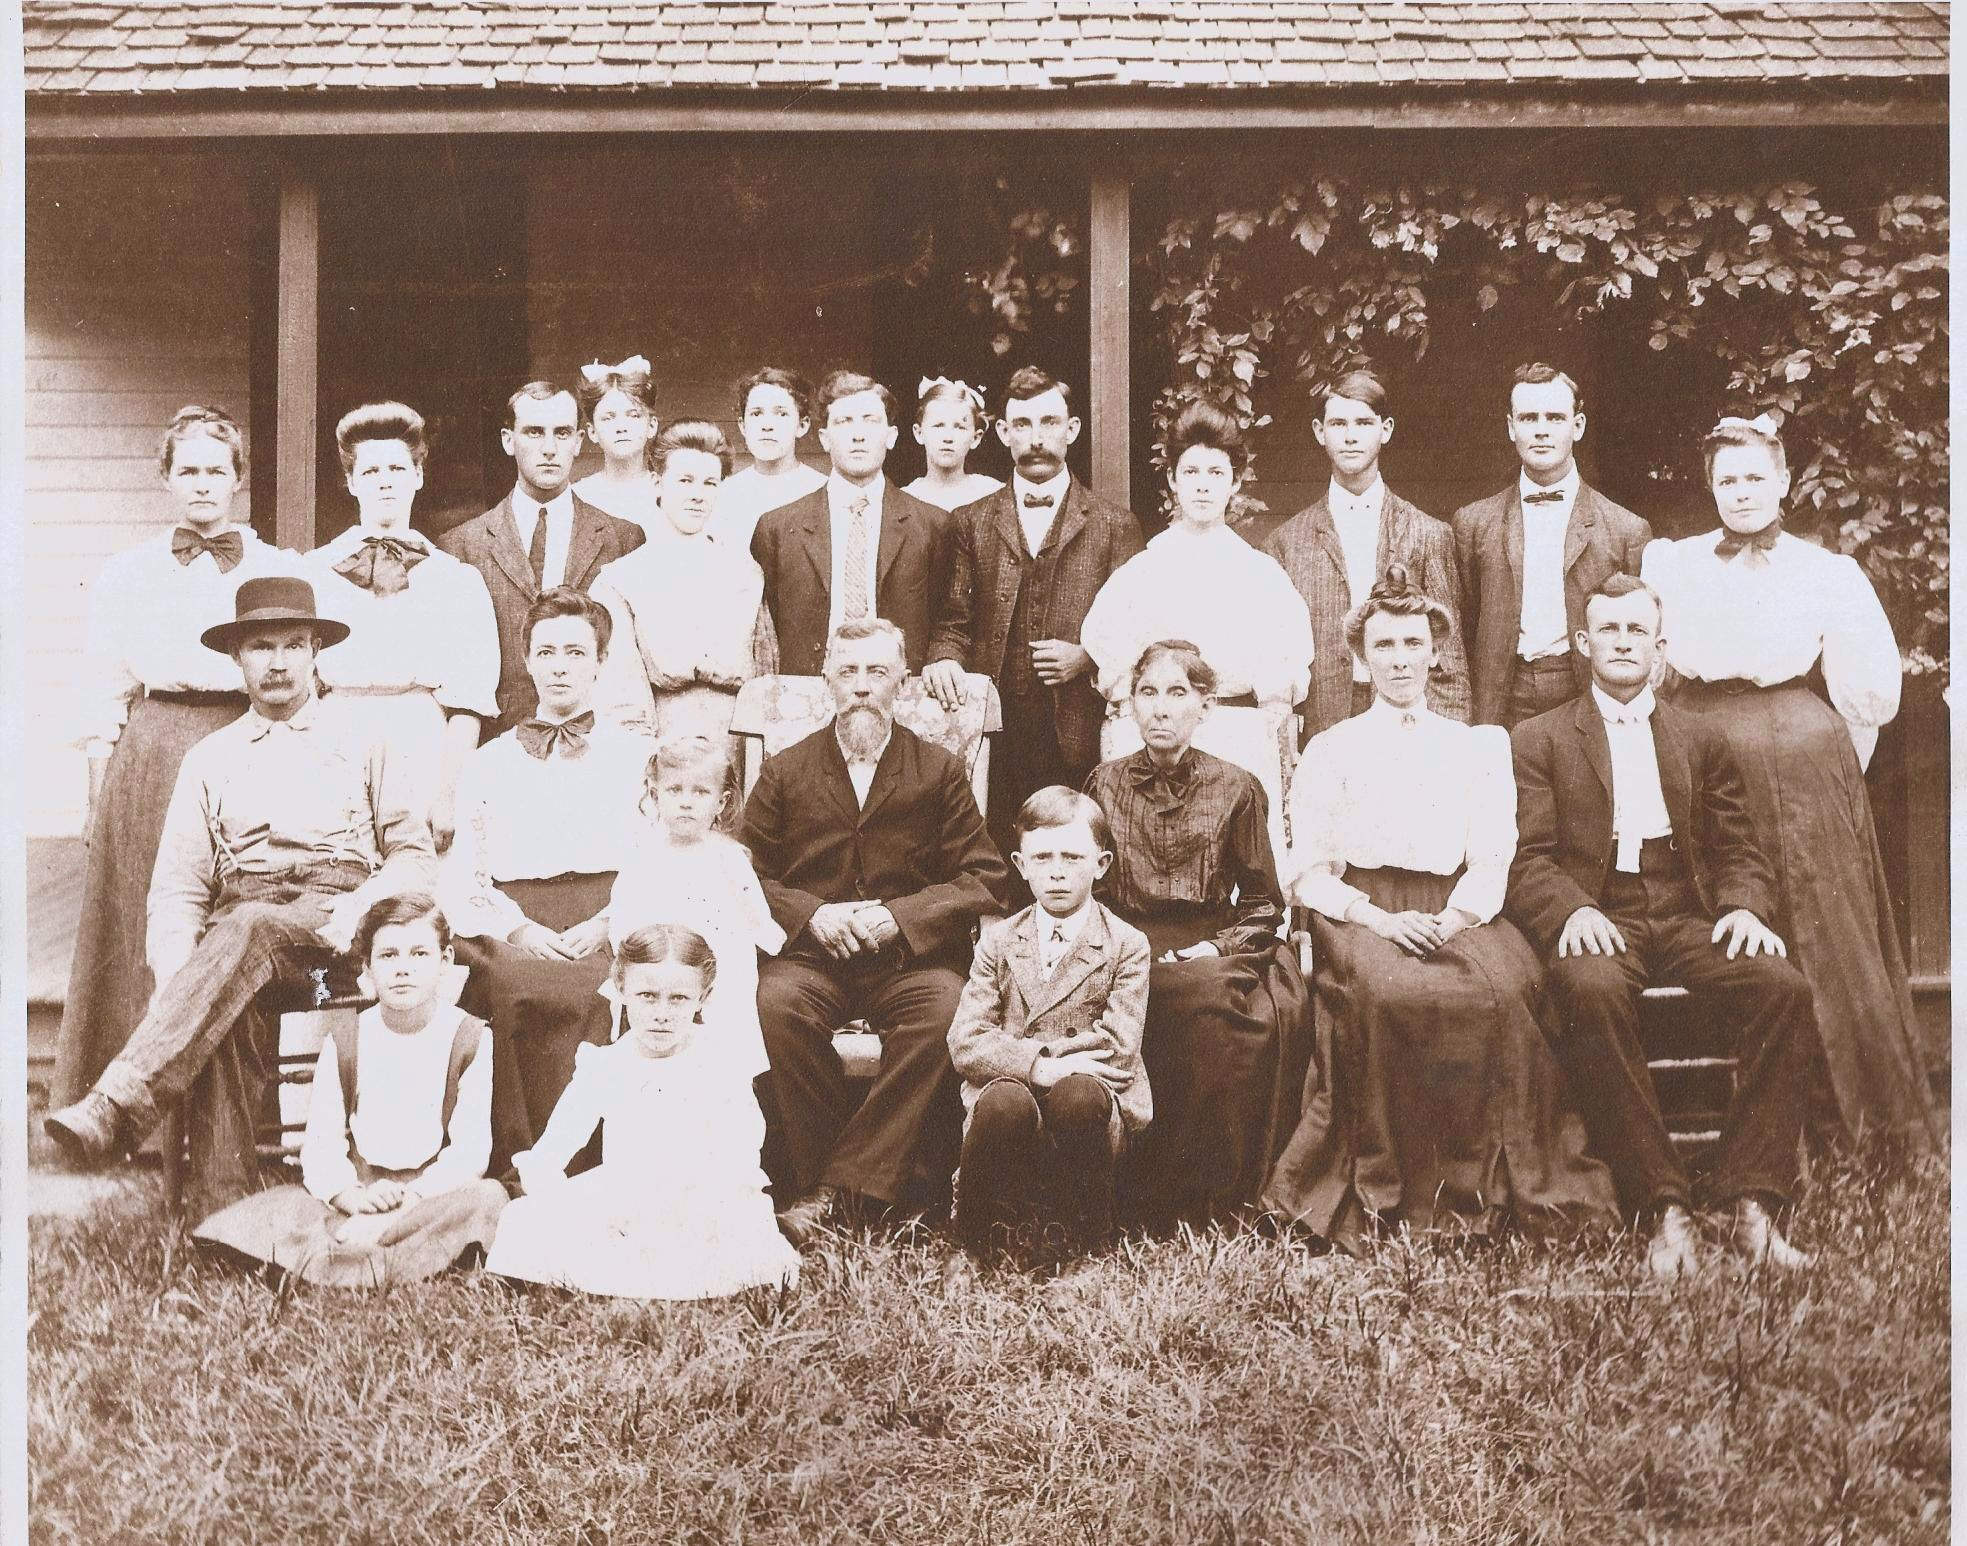 Indiana gibson county francisco - Image Annis Upton Families